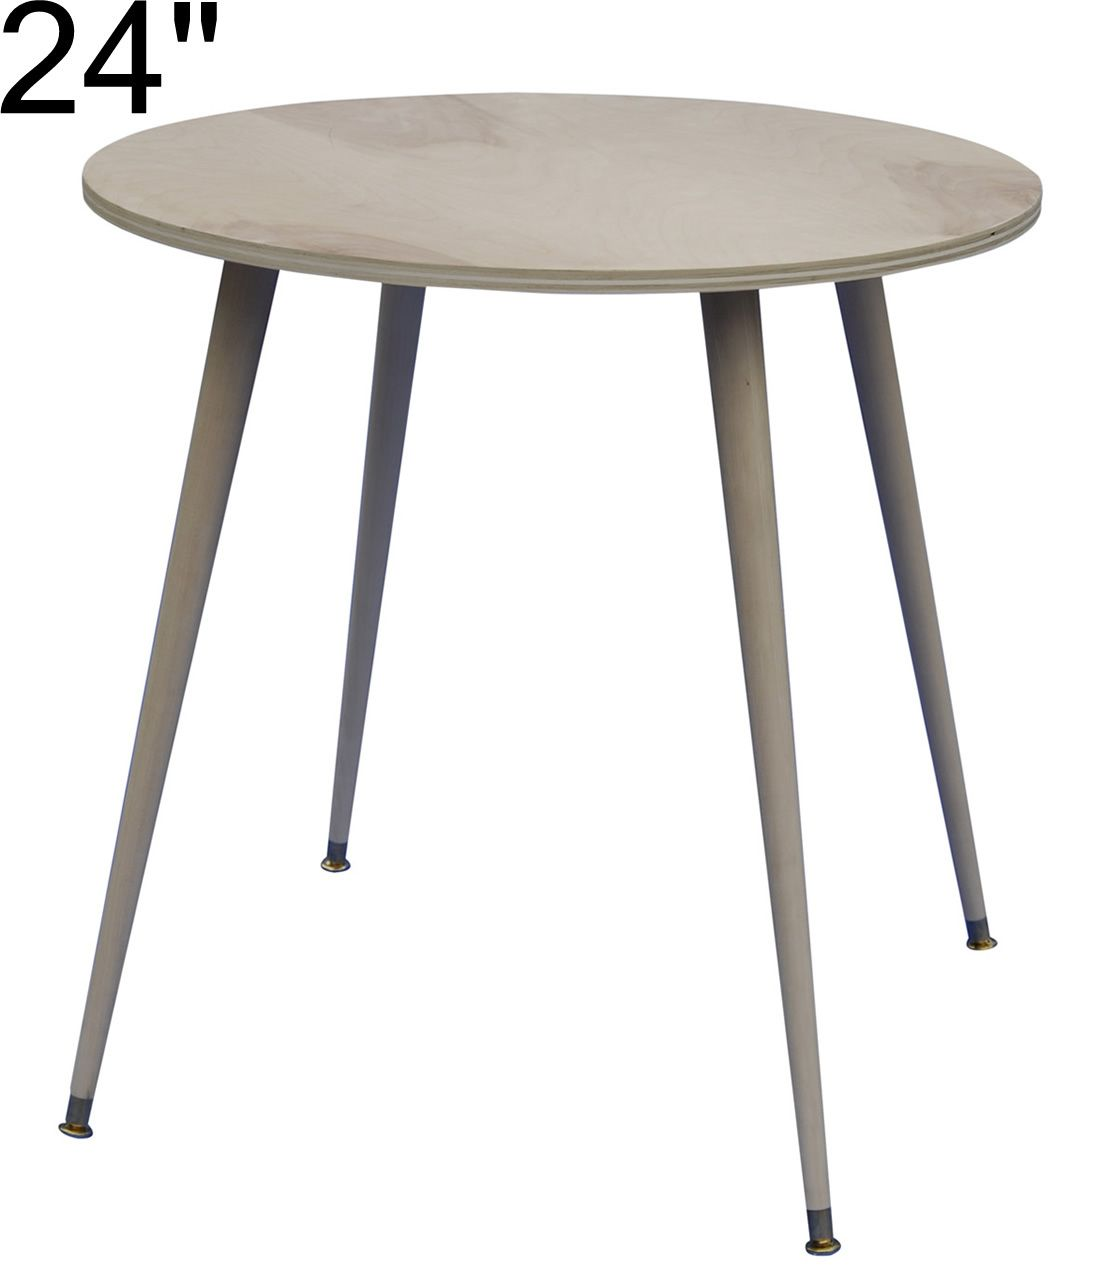 24 Inch Round Table 24 Inch Decorator Tables Table Decor